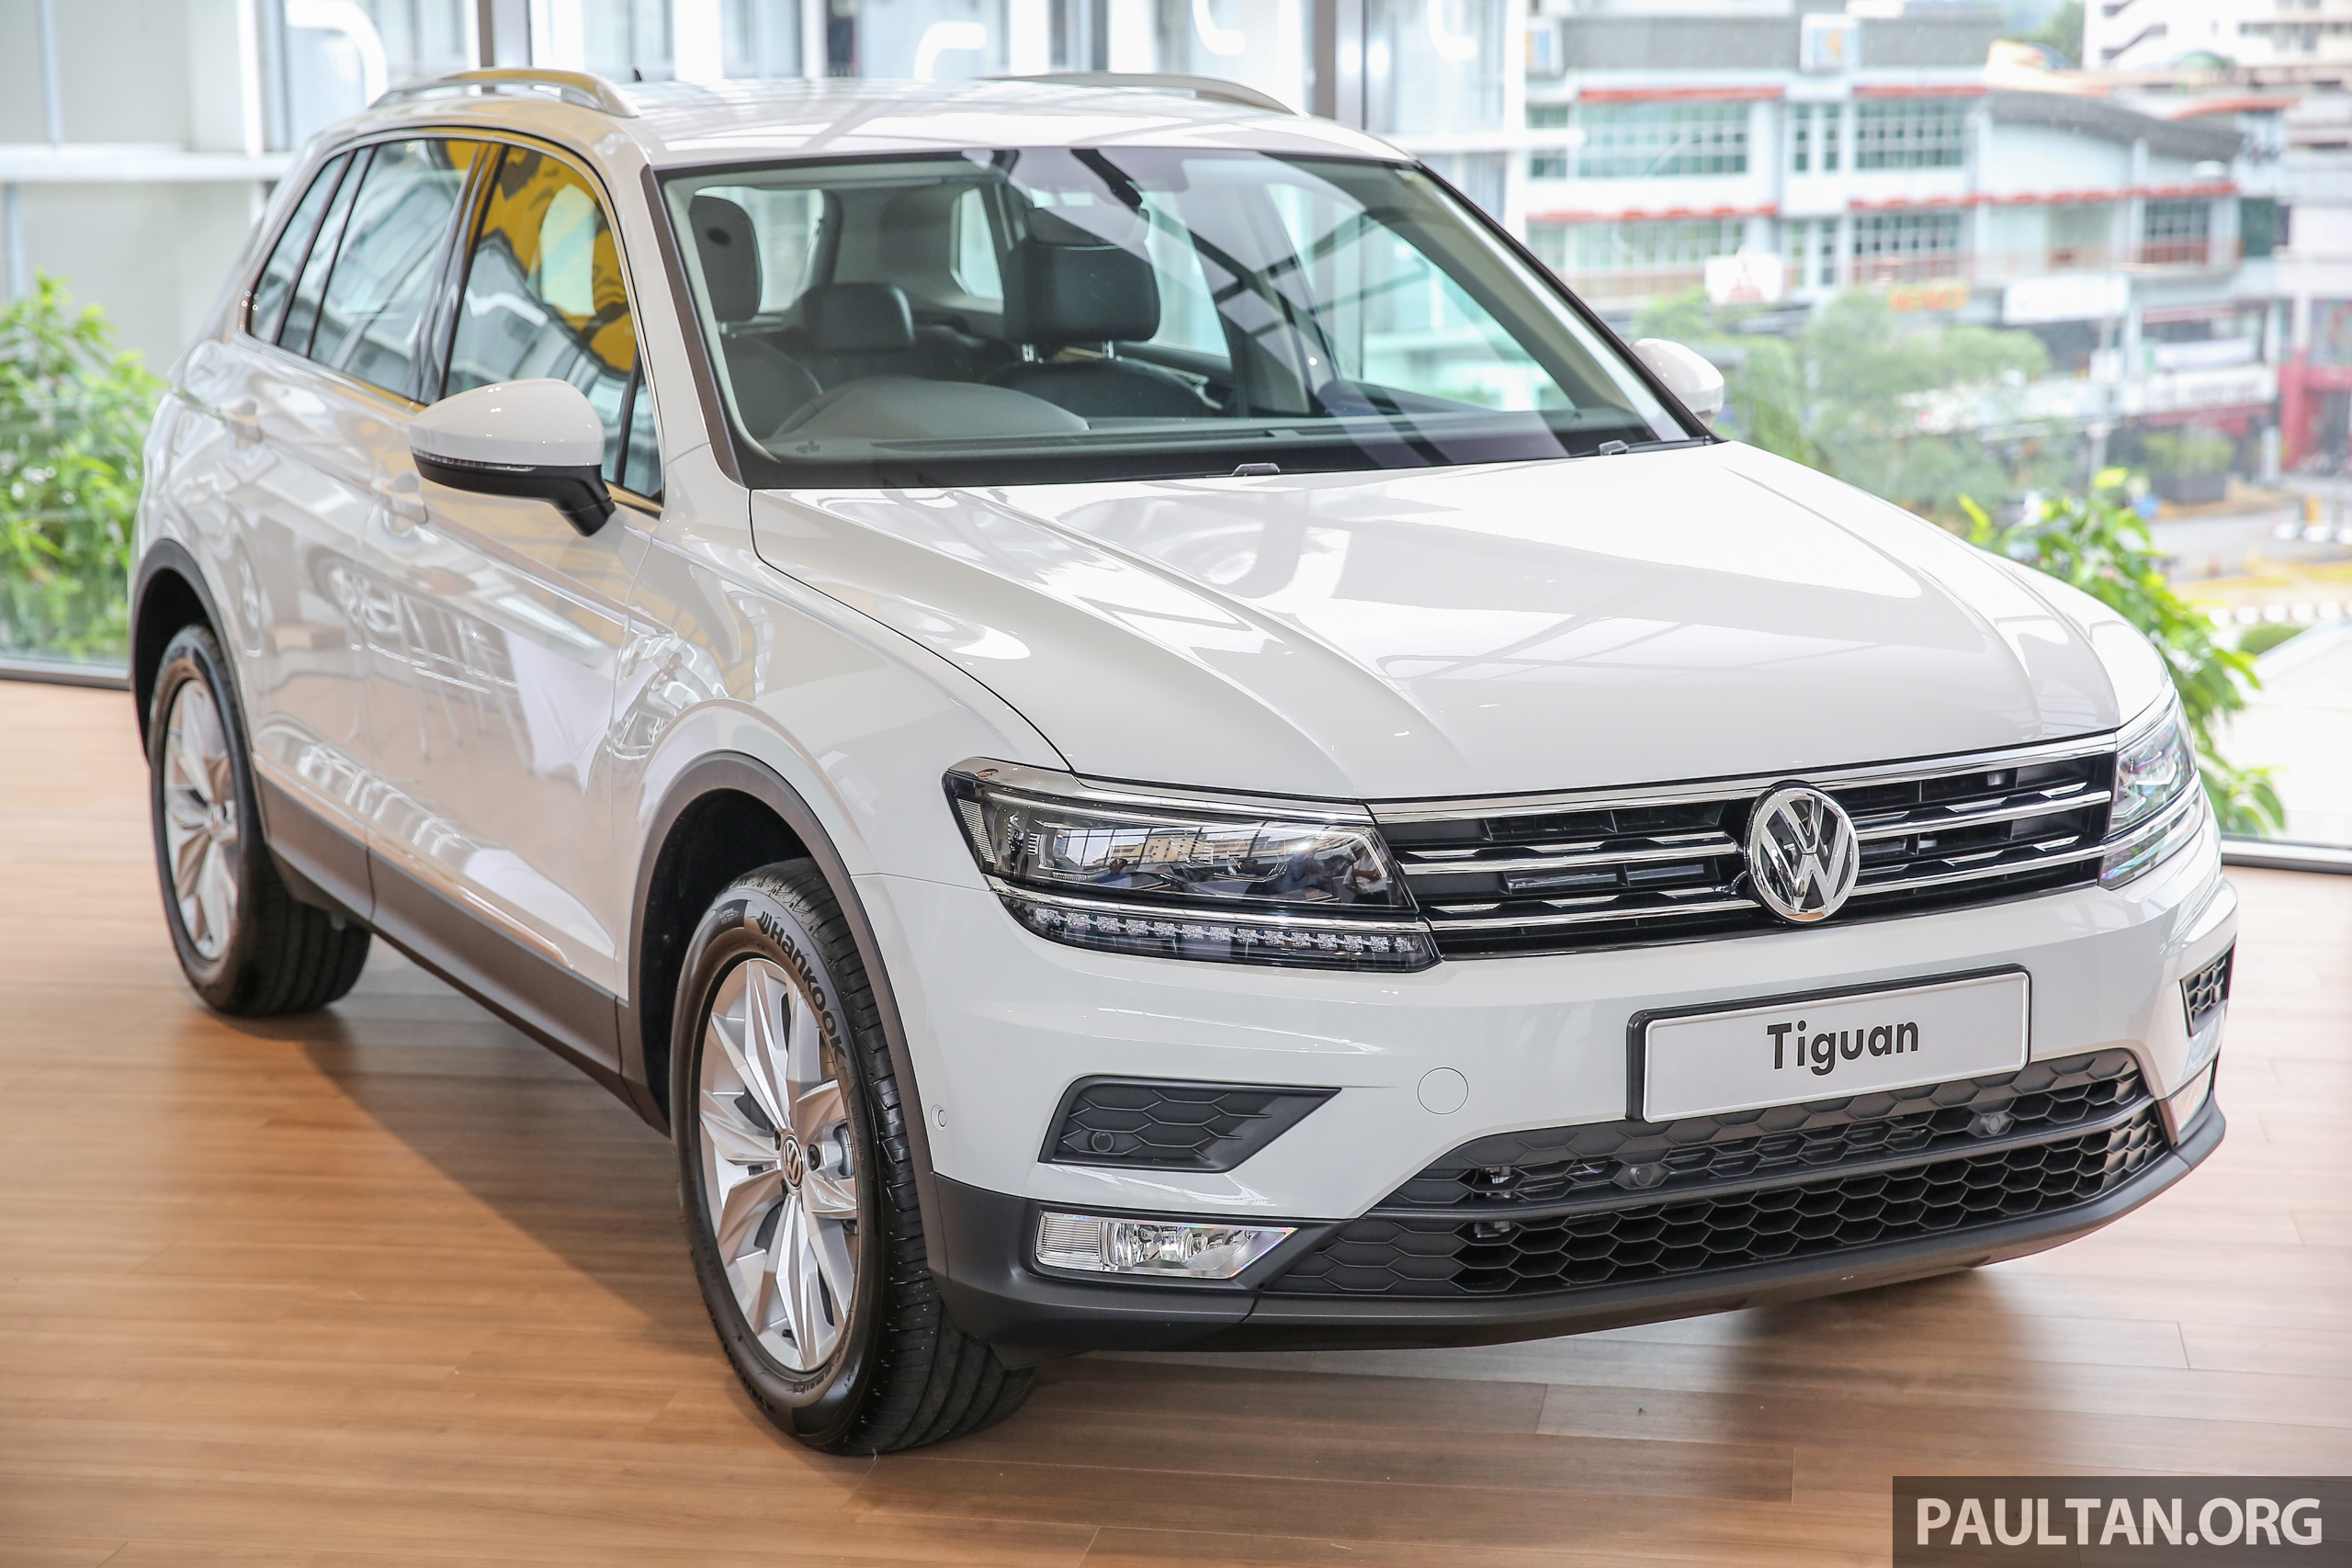 new volkswagen tiguan 1 4 tsi in malaysia fr rm149k image 621932. Black Bedroom Furniture Sets. Home Design Ideas